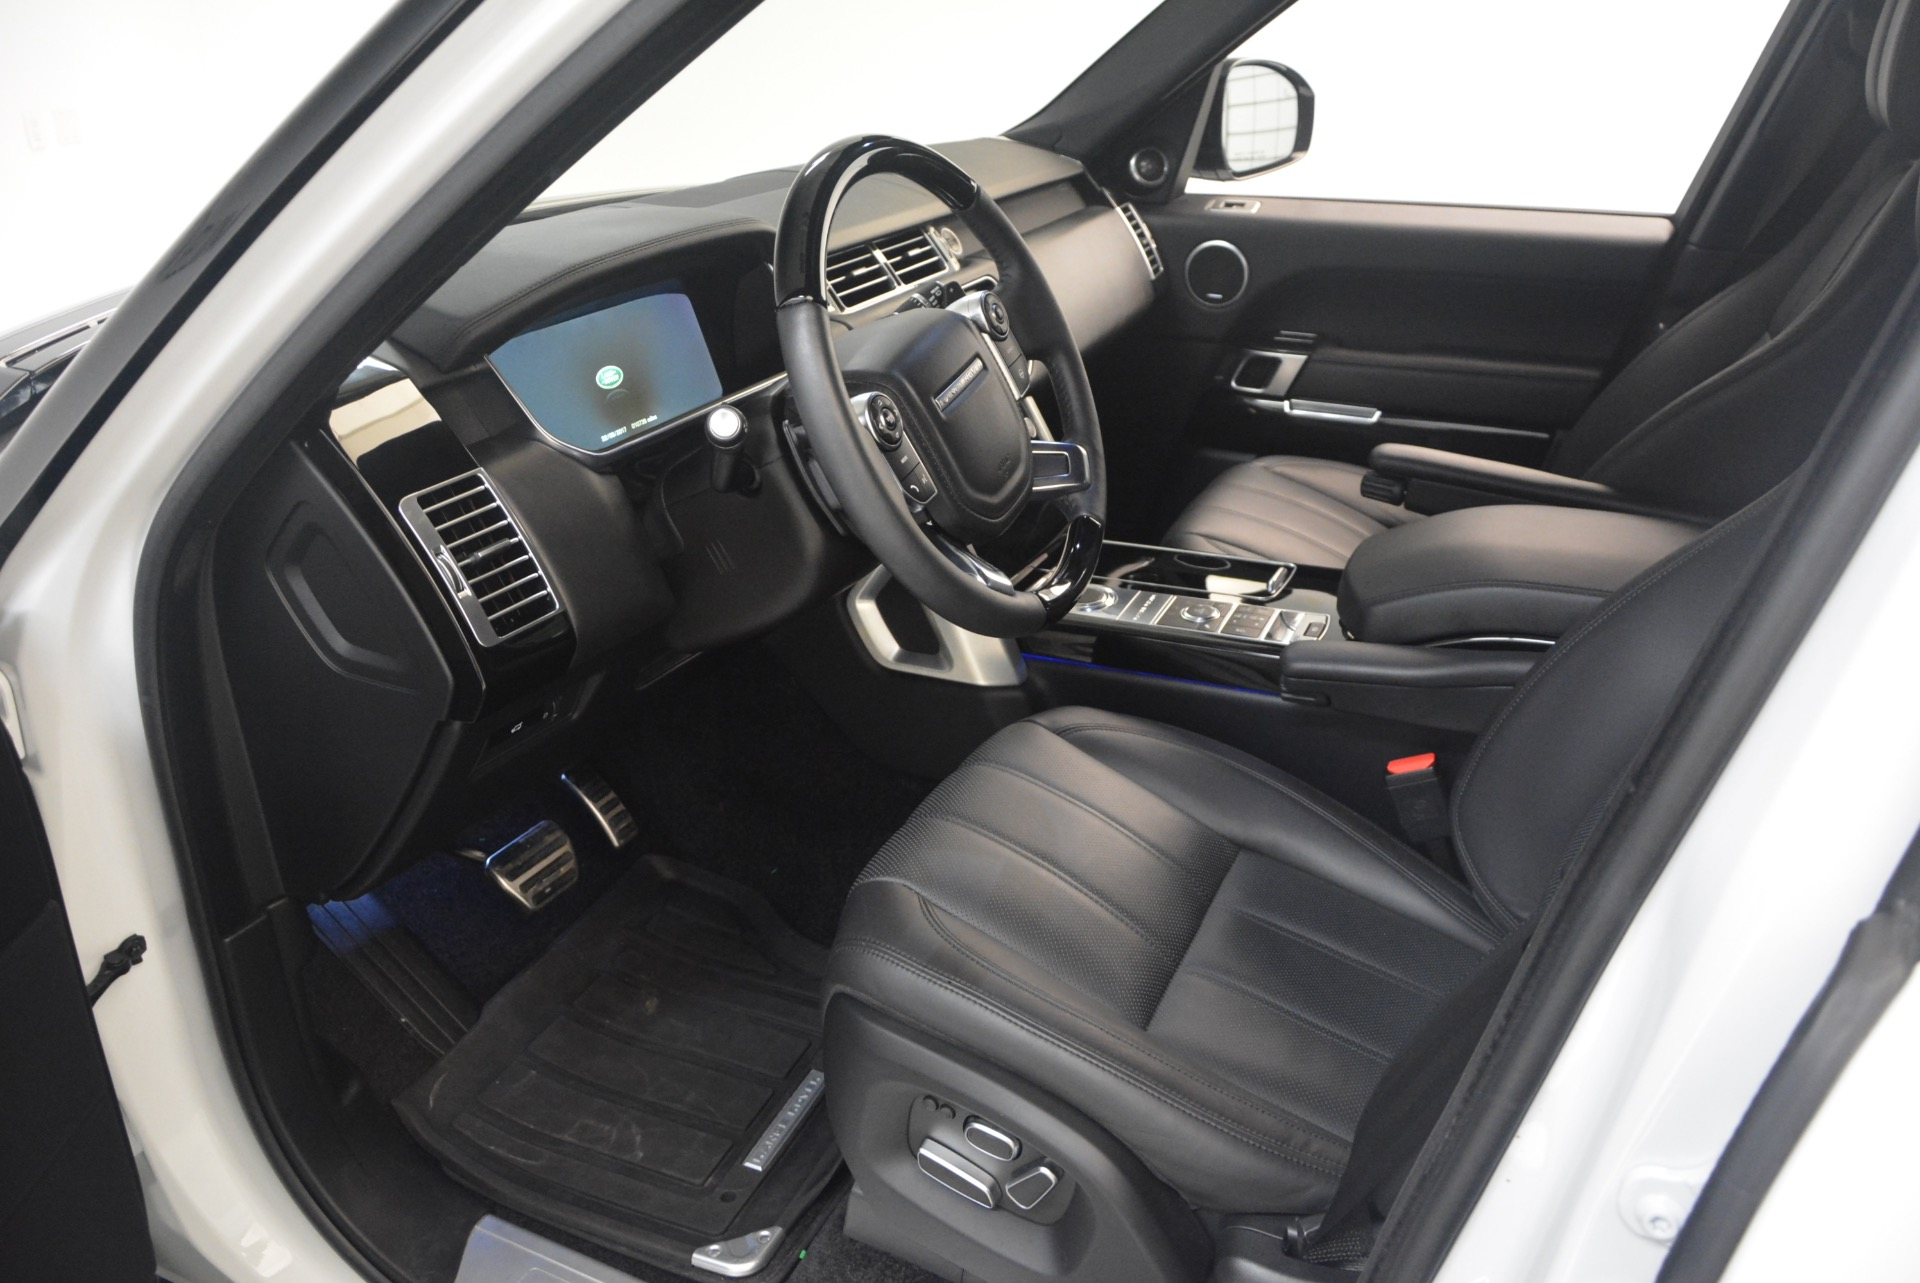 Used 2015 Land Rover Range Rover Supercharged For Sale In Westport, CT 1292_p17